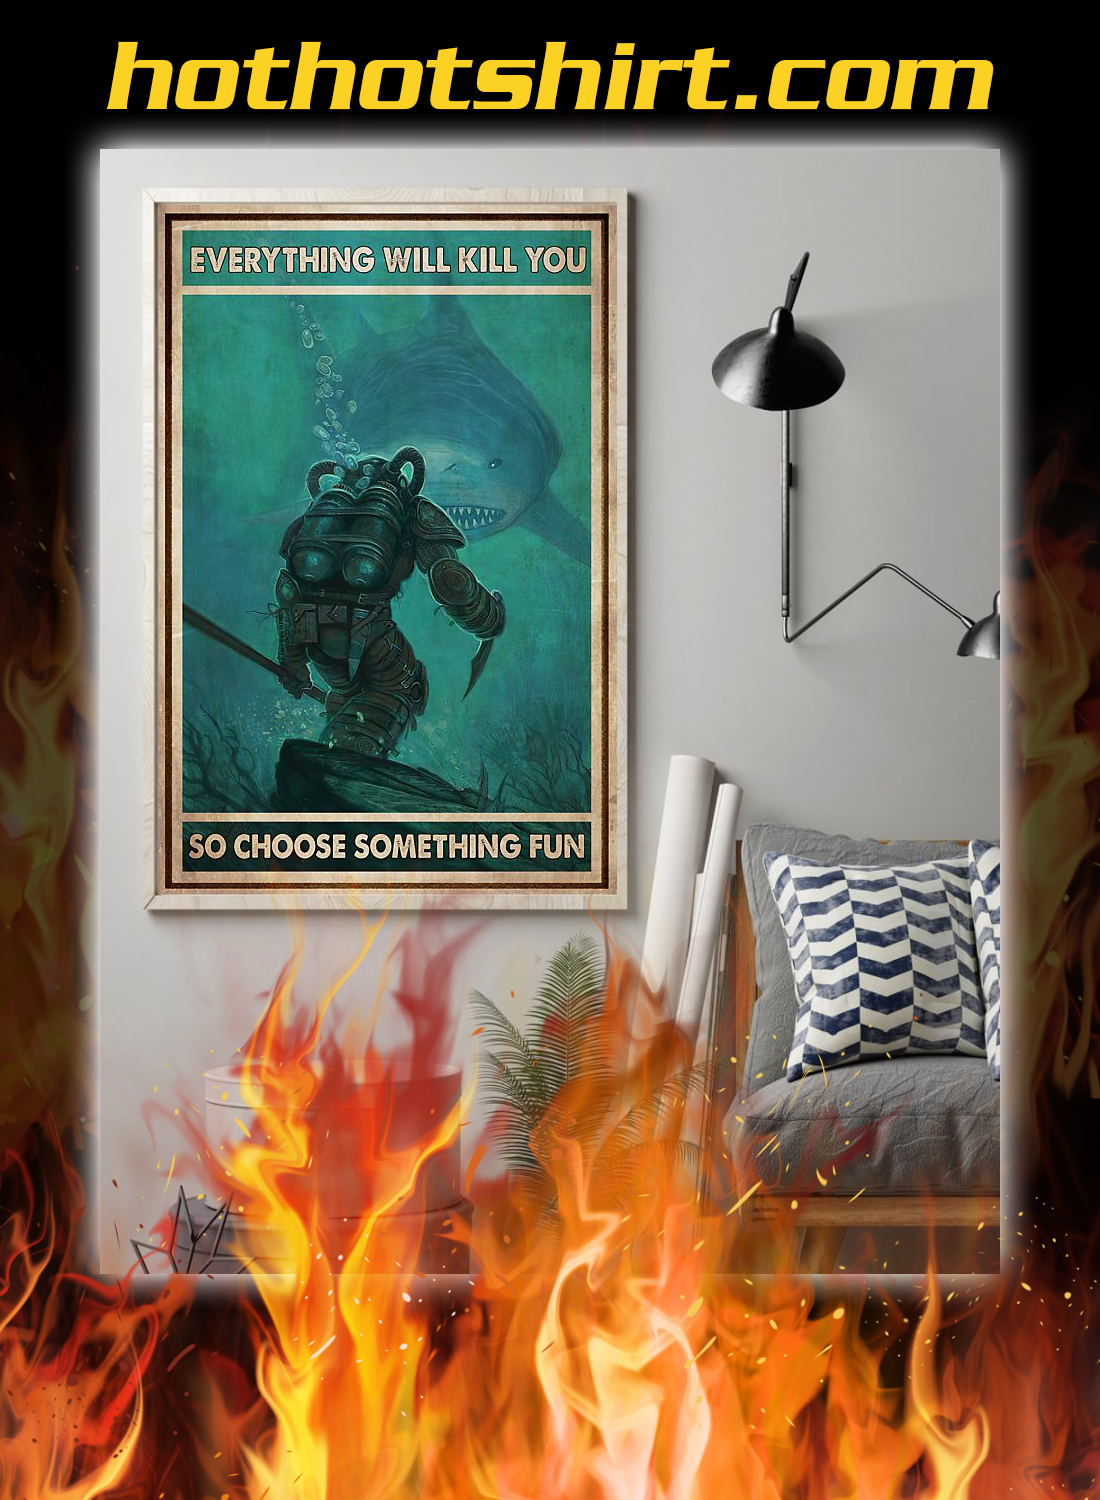 Diver and shark everything will kill you so choose something fun poster 2